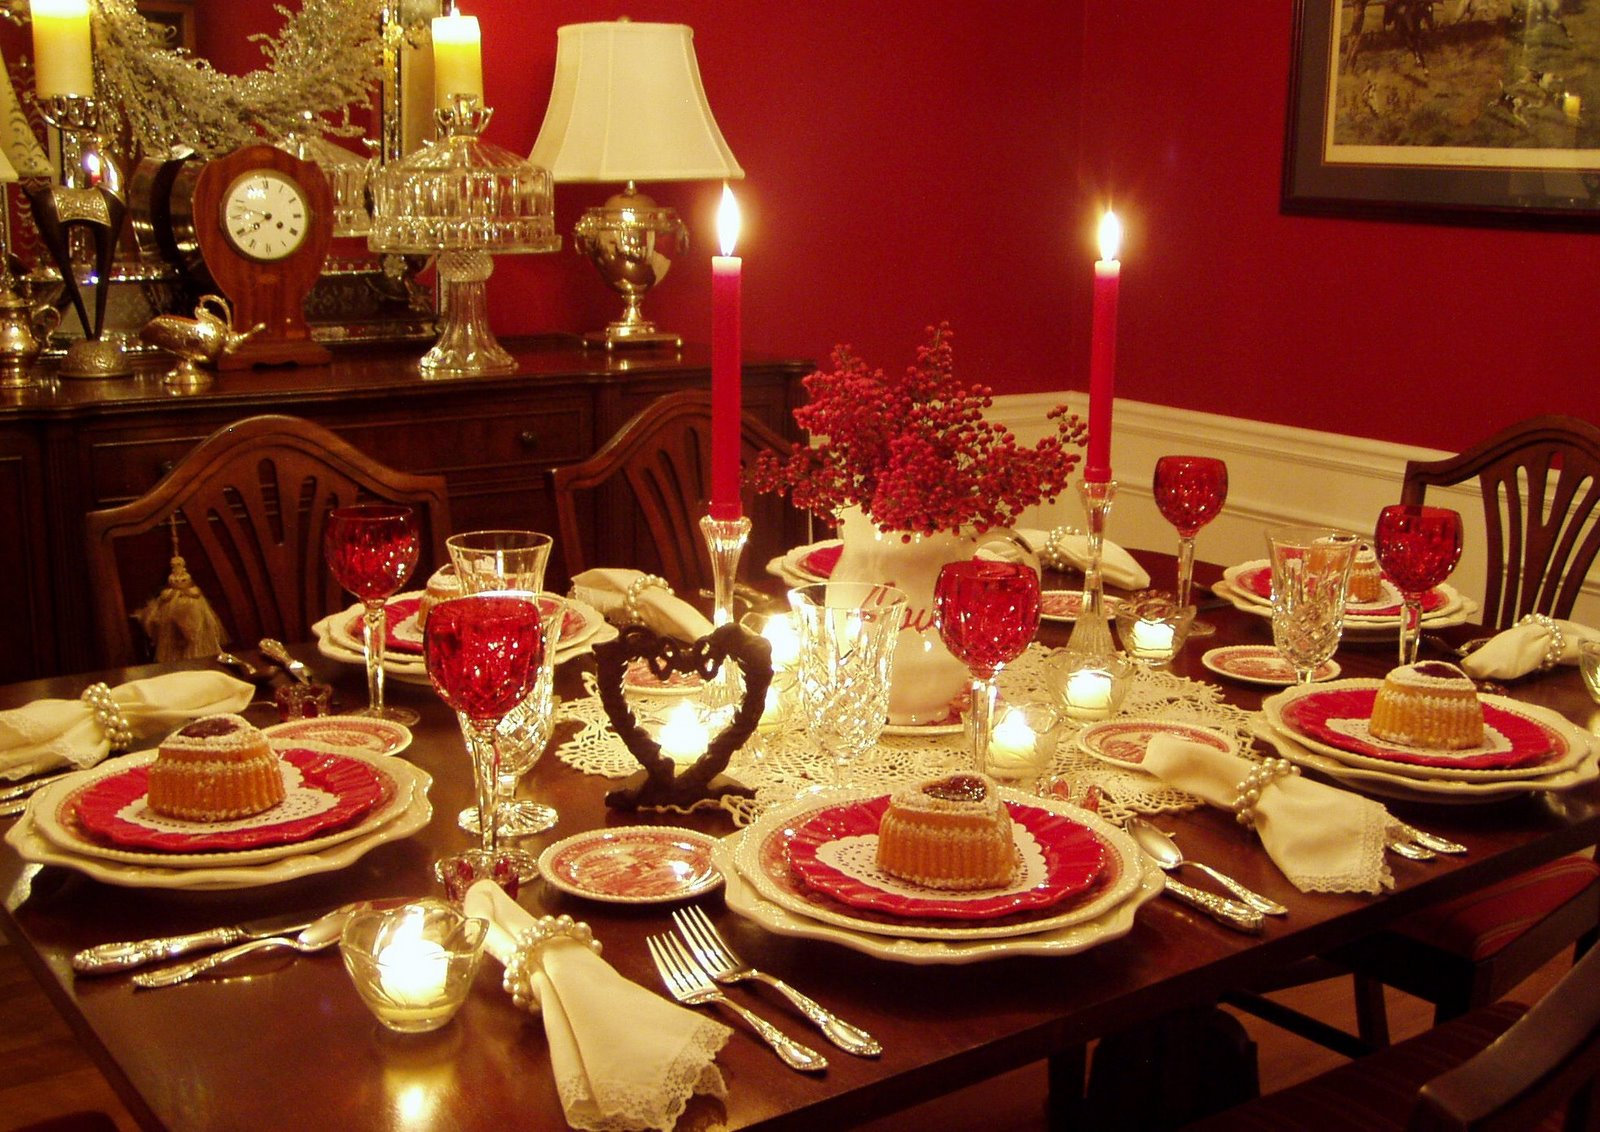 Romantic Valentines Day Tablescapes Table Settings With